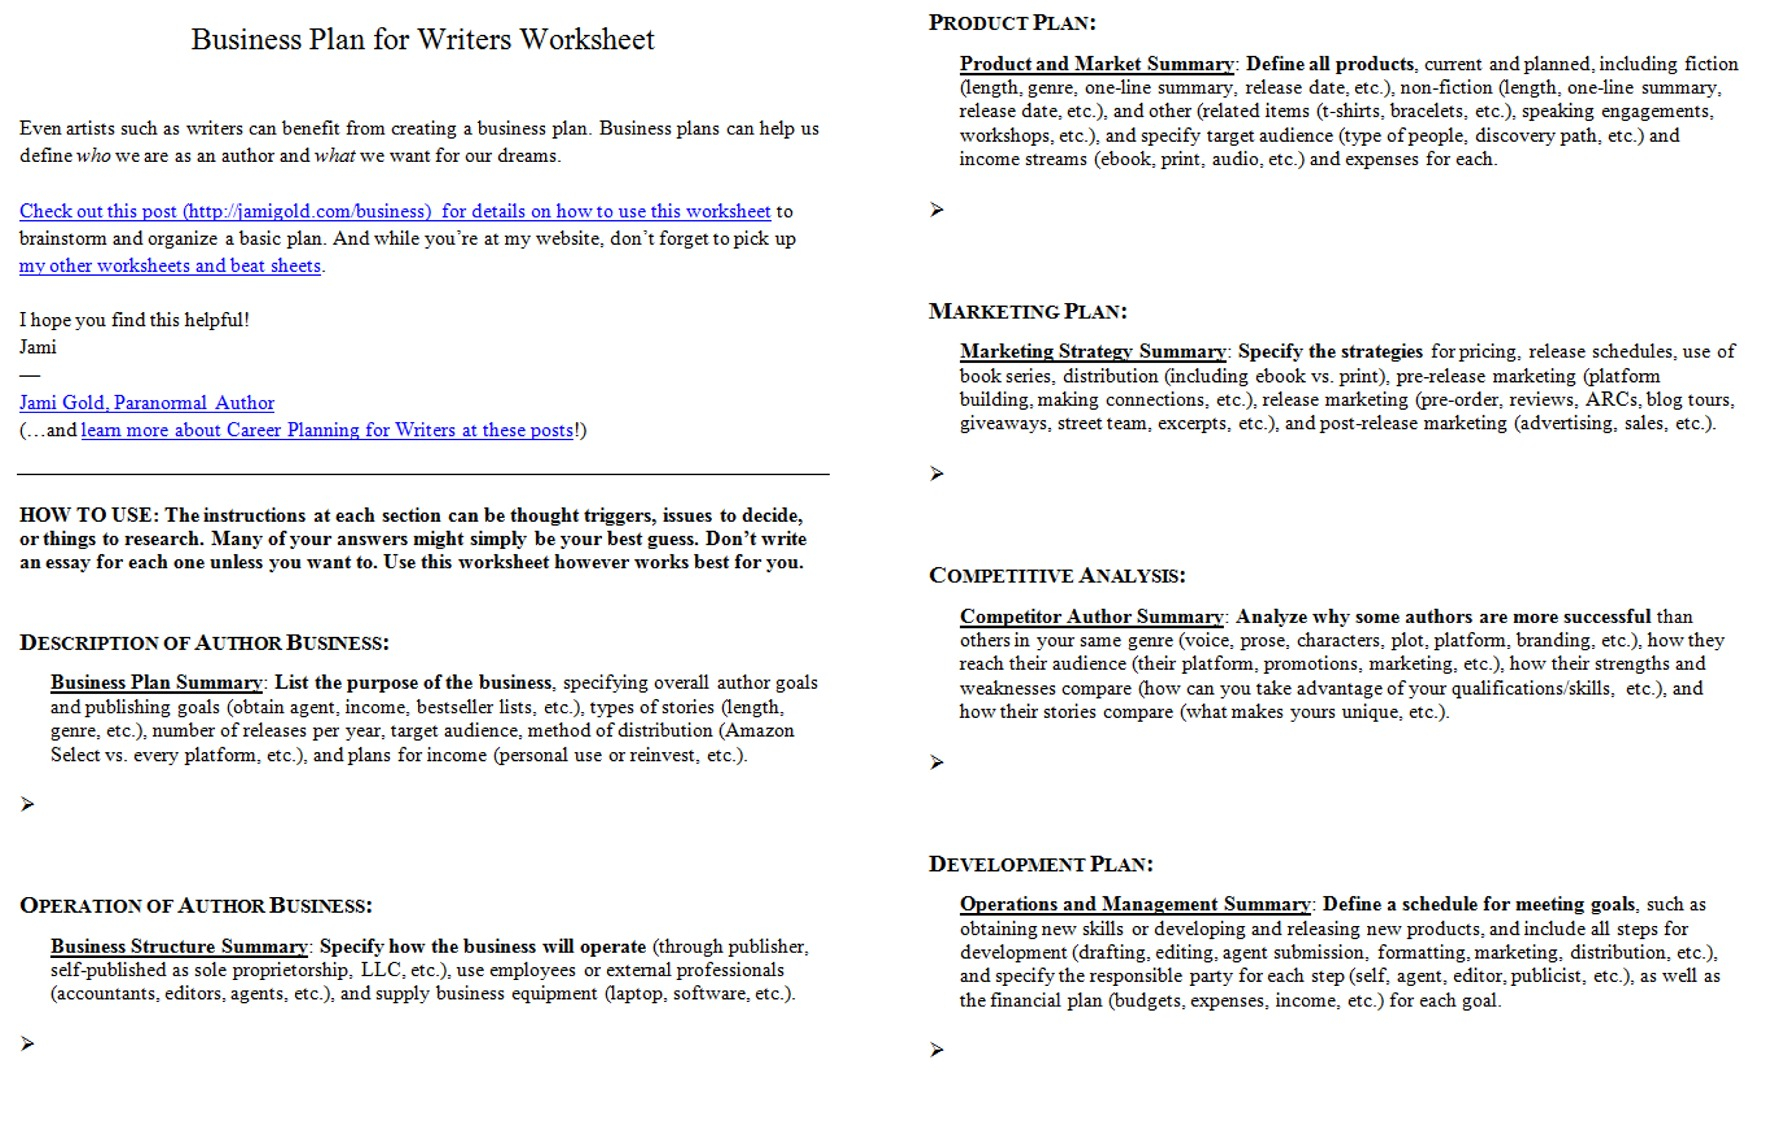 Aldiablosus  Terrific Worksheets For Writers  Jami Gold Paranormal Author With Foxy Screen Shot Of Both Pages Of The Business Plan For Writers Worksheet With Adorable Greek Roots Worksheet Also The Tell Tale Heart Vocabulary Worksheet In Addition Trigonometric Ratios Worksheet Pdf And Reading With Understanding Worksheets As Well As Inferences Worksheet  Additionally Worksheet Cause And Effect From Jamigoldcom With Aldiablosus  Foxy Worksheets For Writers  Jami Gold Paranormal Author With Adorable Screen Shot Of Both Pages Of The Business Plan For Writers Worksheet And Terrific Greek Roots Worksheet Also The Tell Tale Heart Vocabulary Worksheet In Addition Trigonometric Ratios Worksheet Pdf From Jamigoldcom